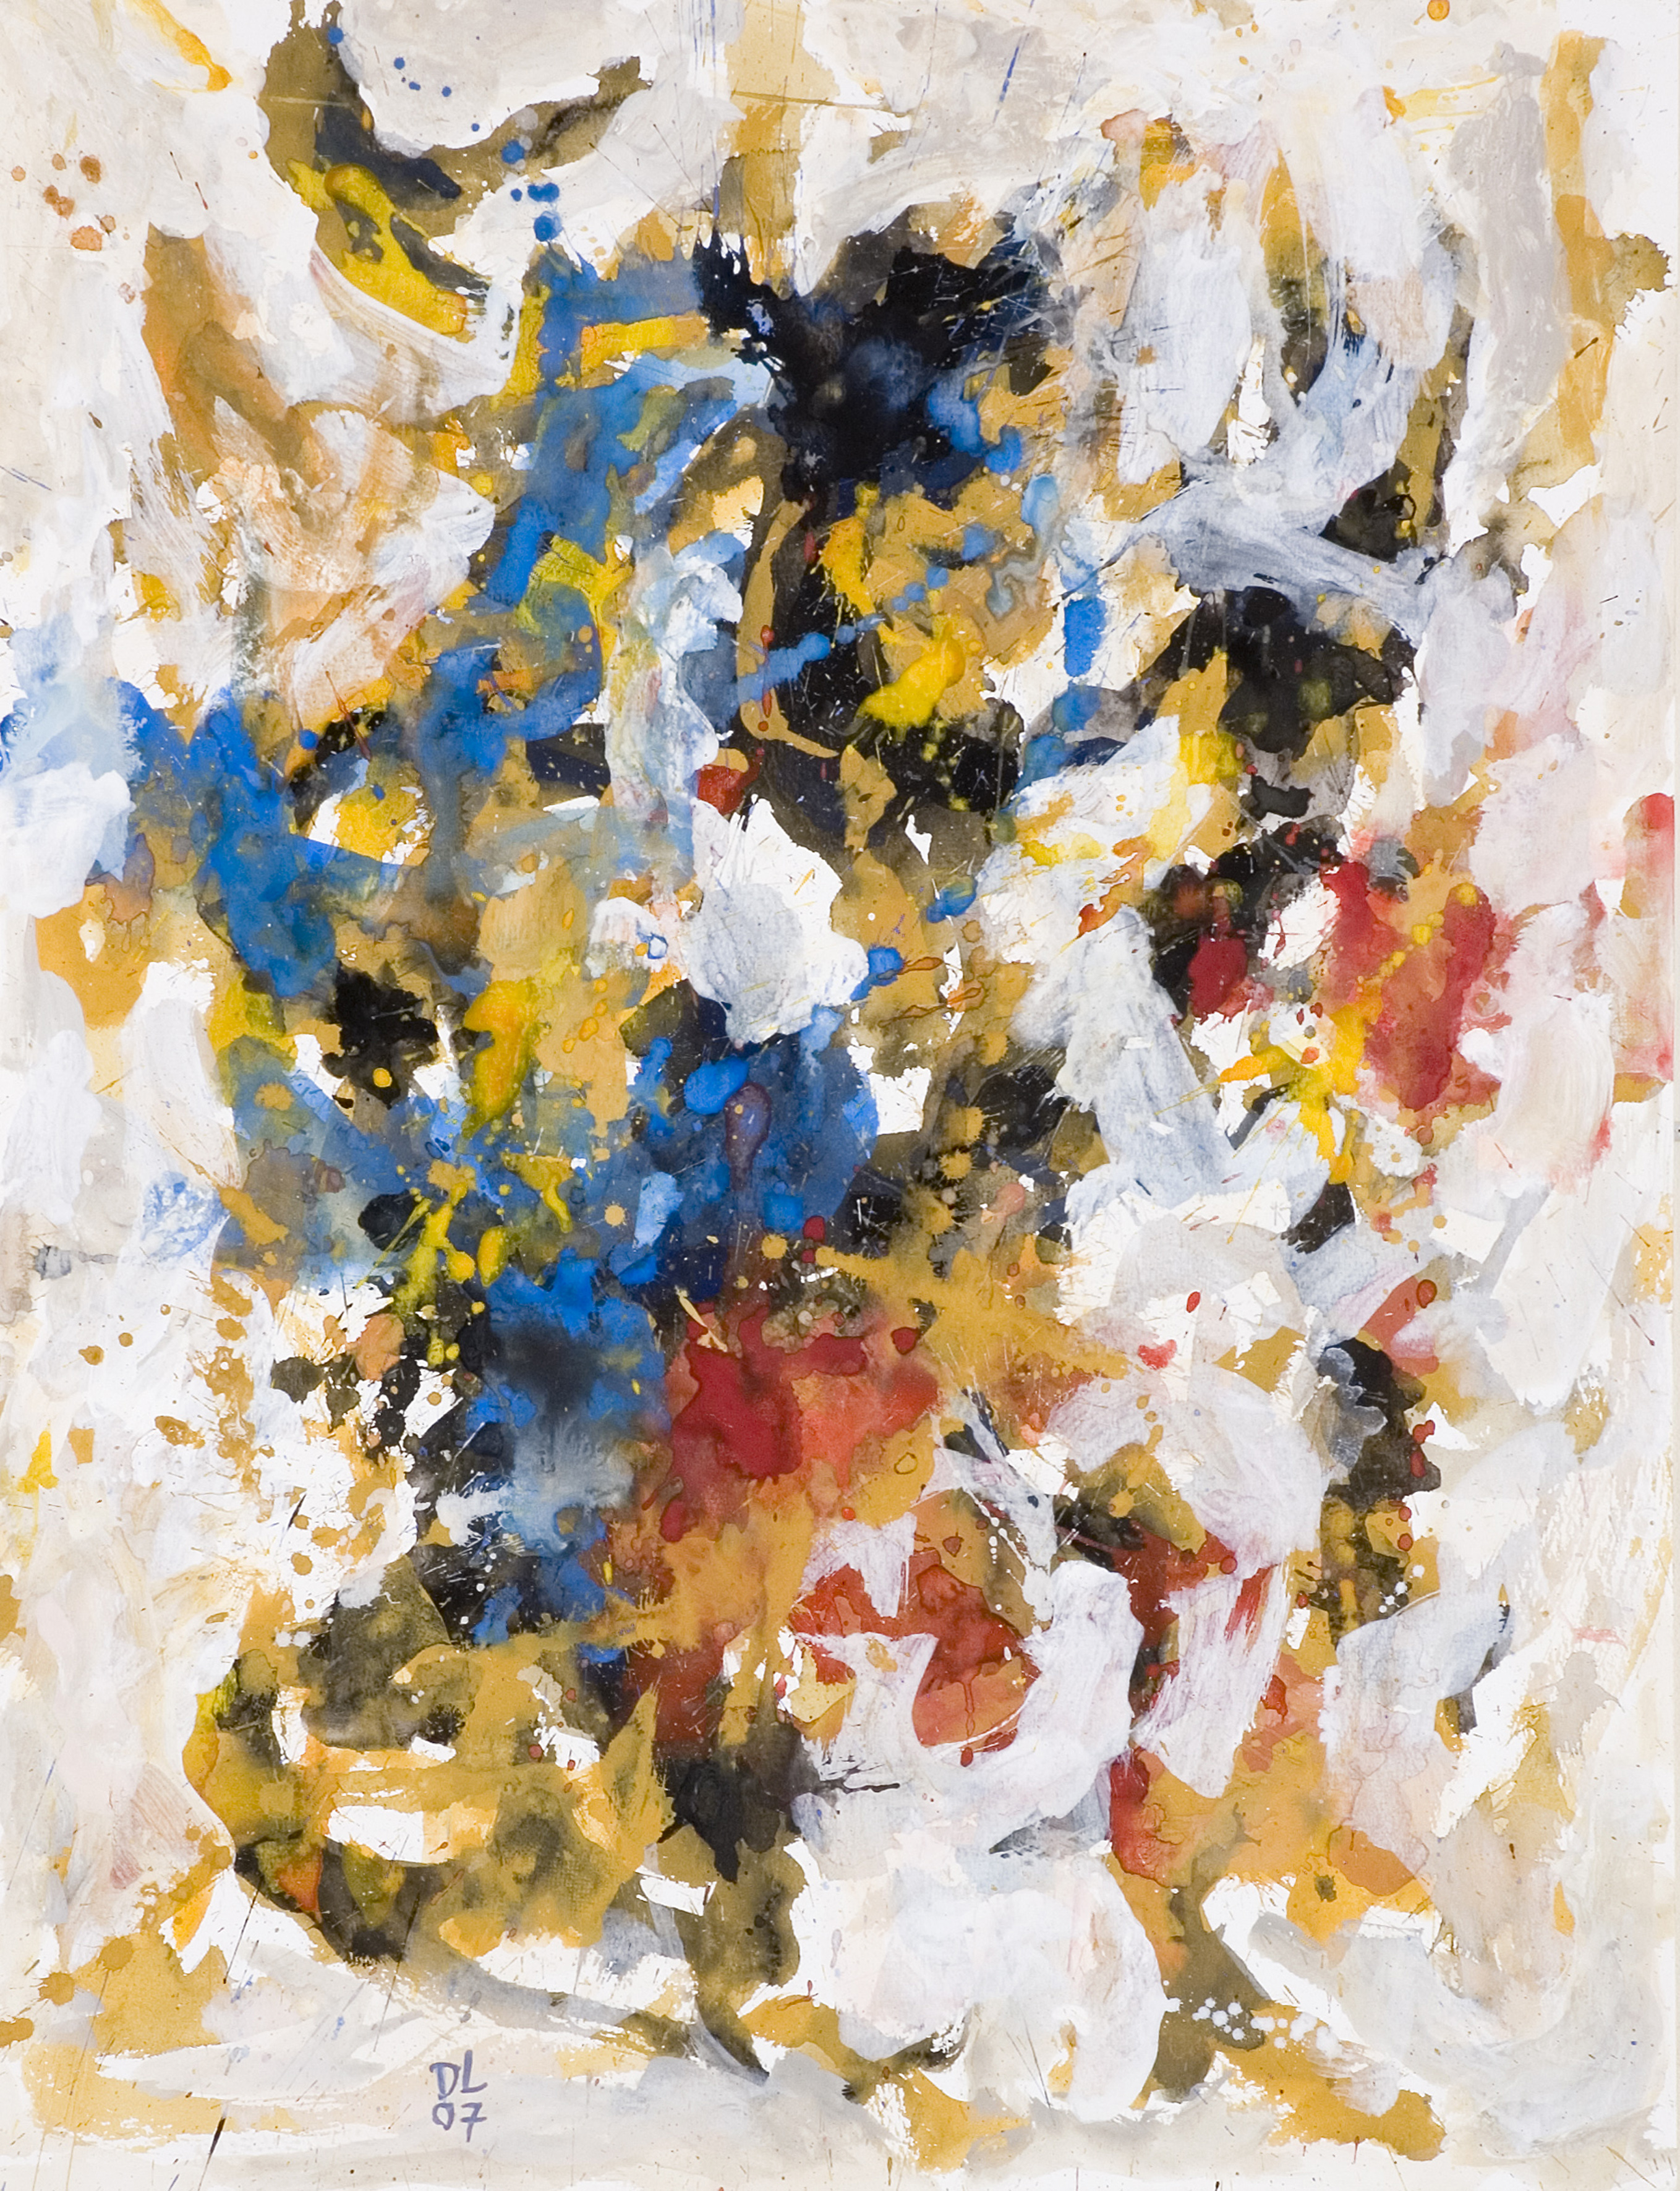 essays on abstract art Abstract art uses a visual language of shape, form, color and line to create a composition which may exist with a degree of independence from visual references in.